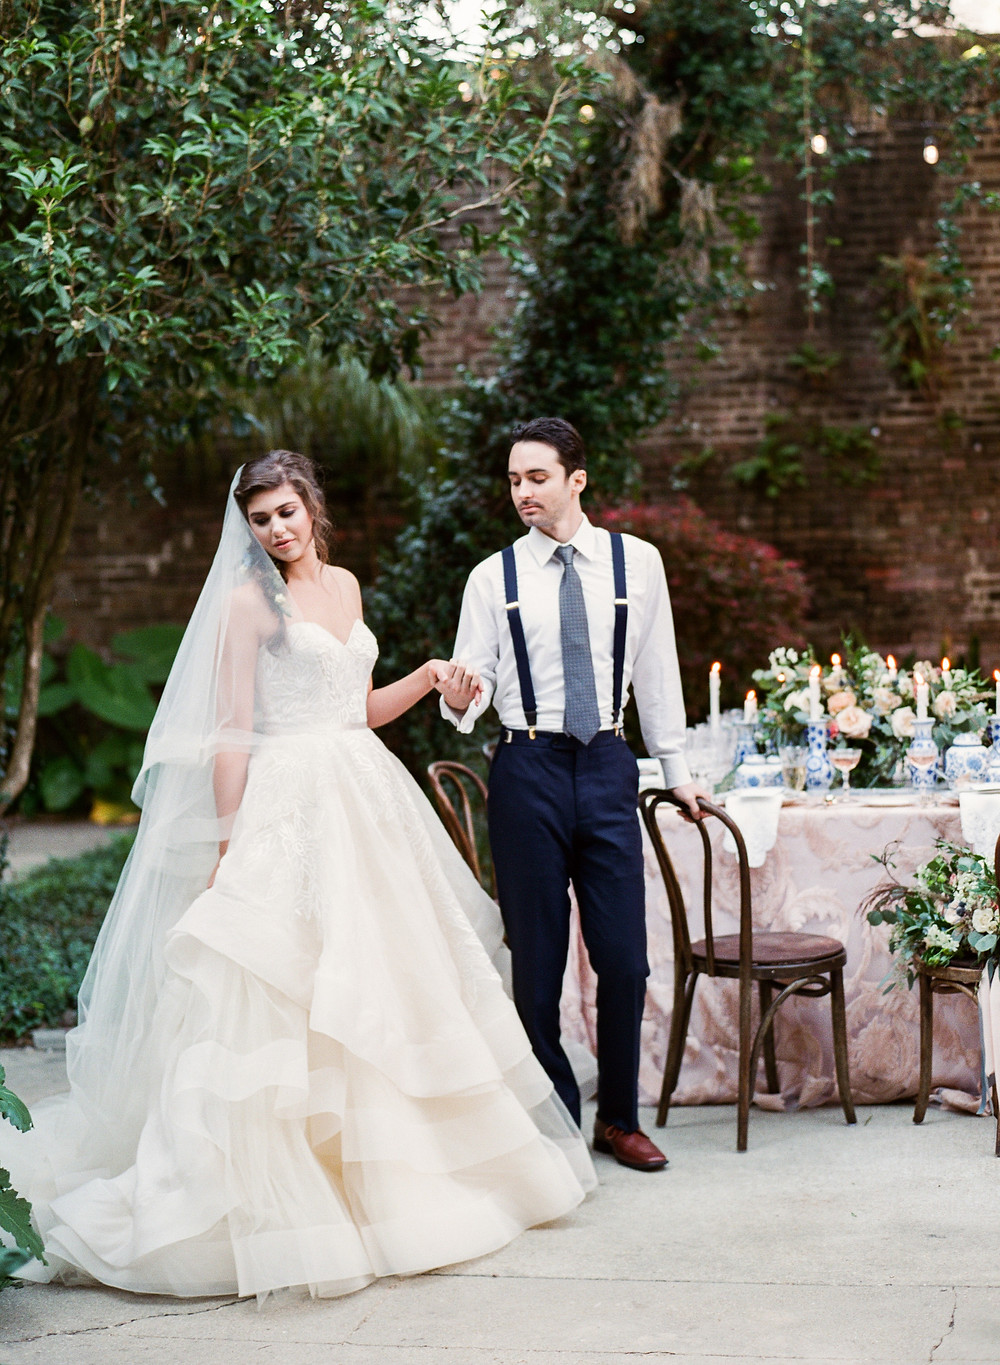 Lush Courtyard Inspiration | Monastery Style Shoot with Catherine Guidry Photography, Blue Gardenia Events, Root Floral Design, and Lovegood Wedding & Event Rentals